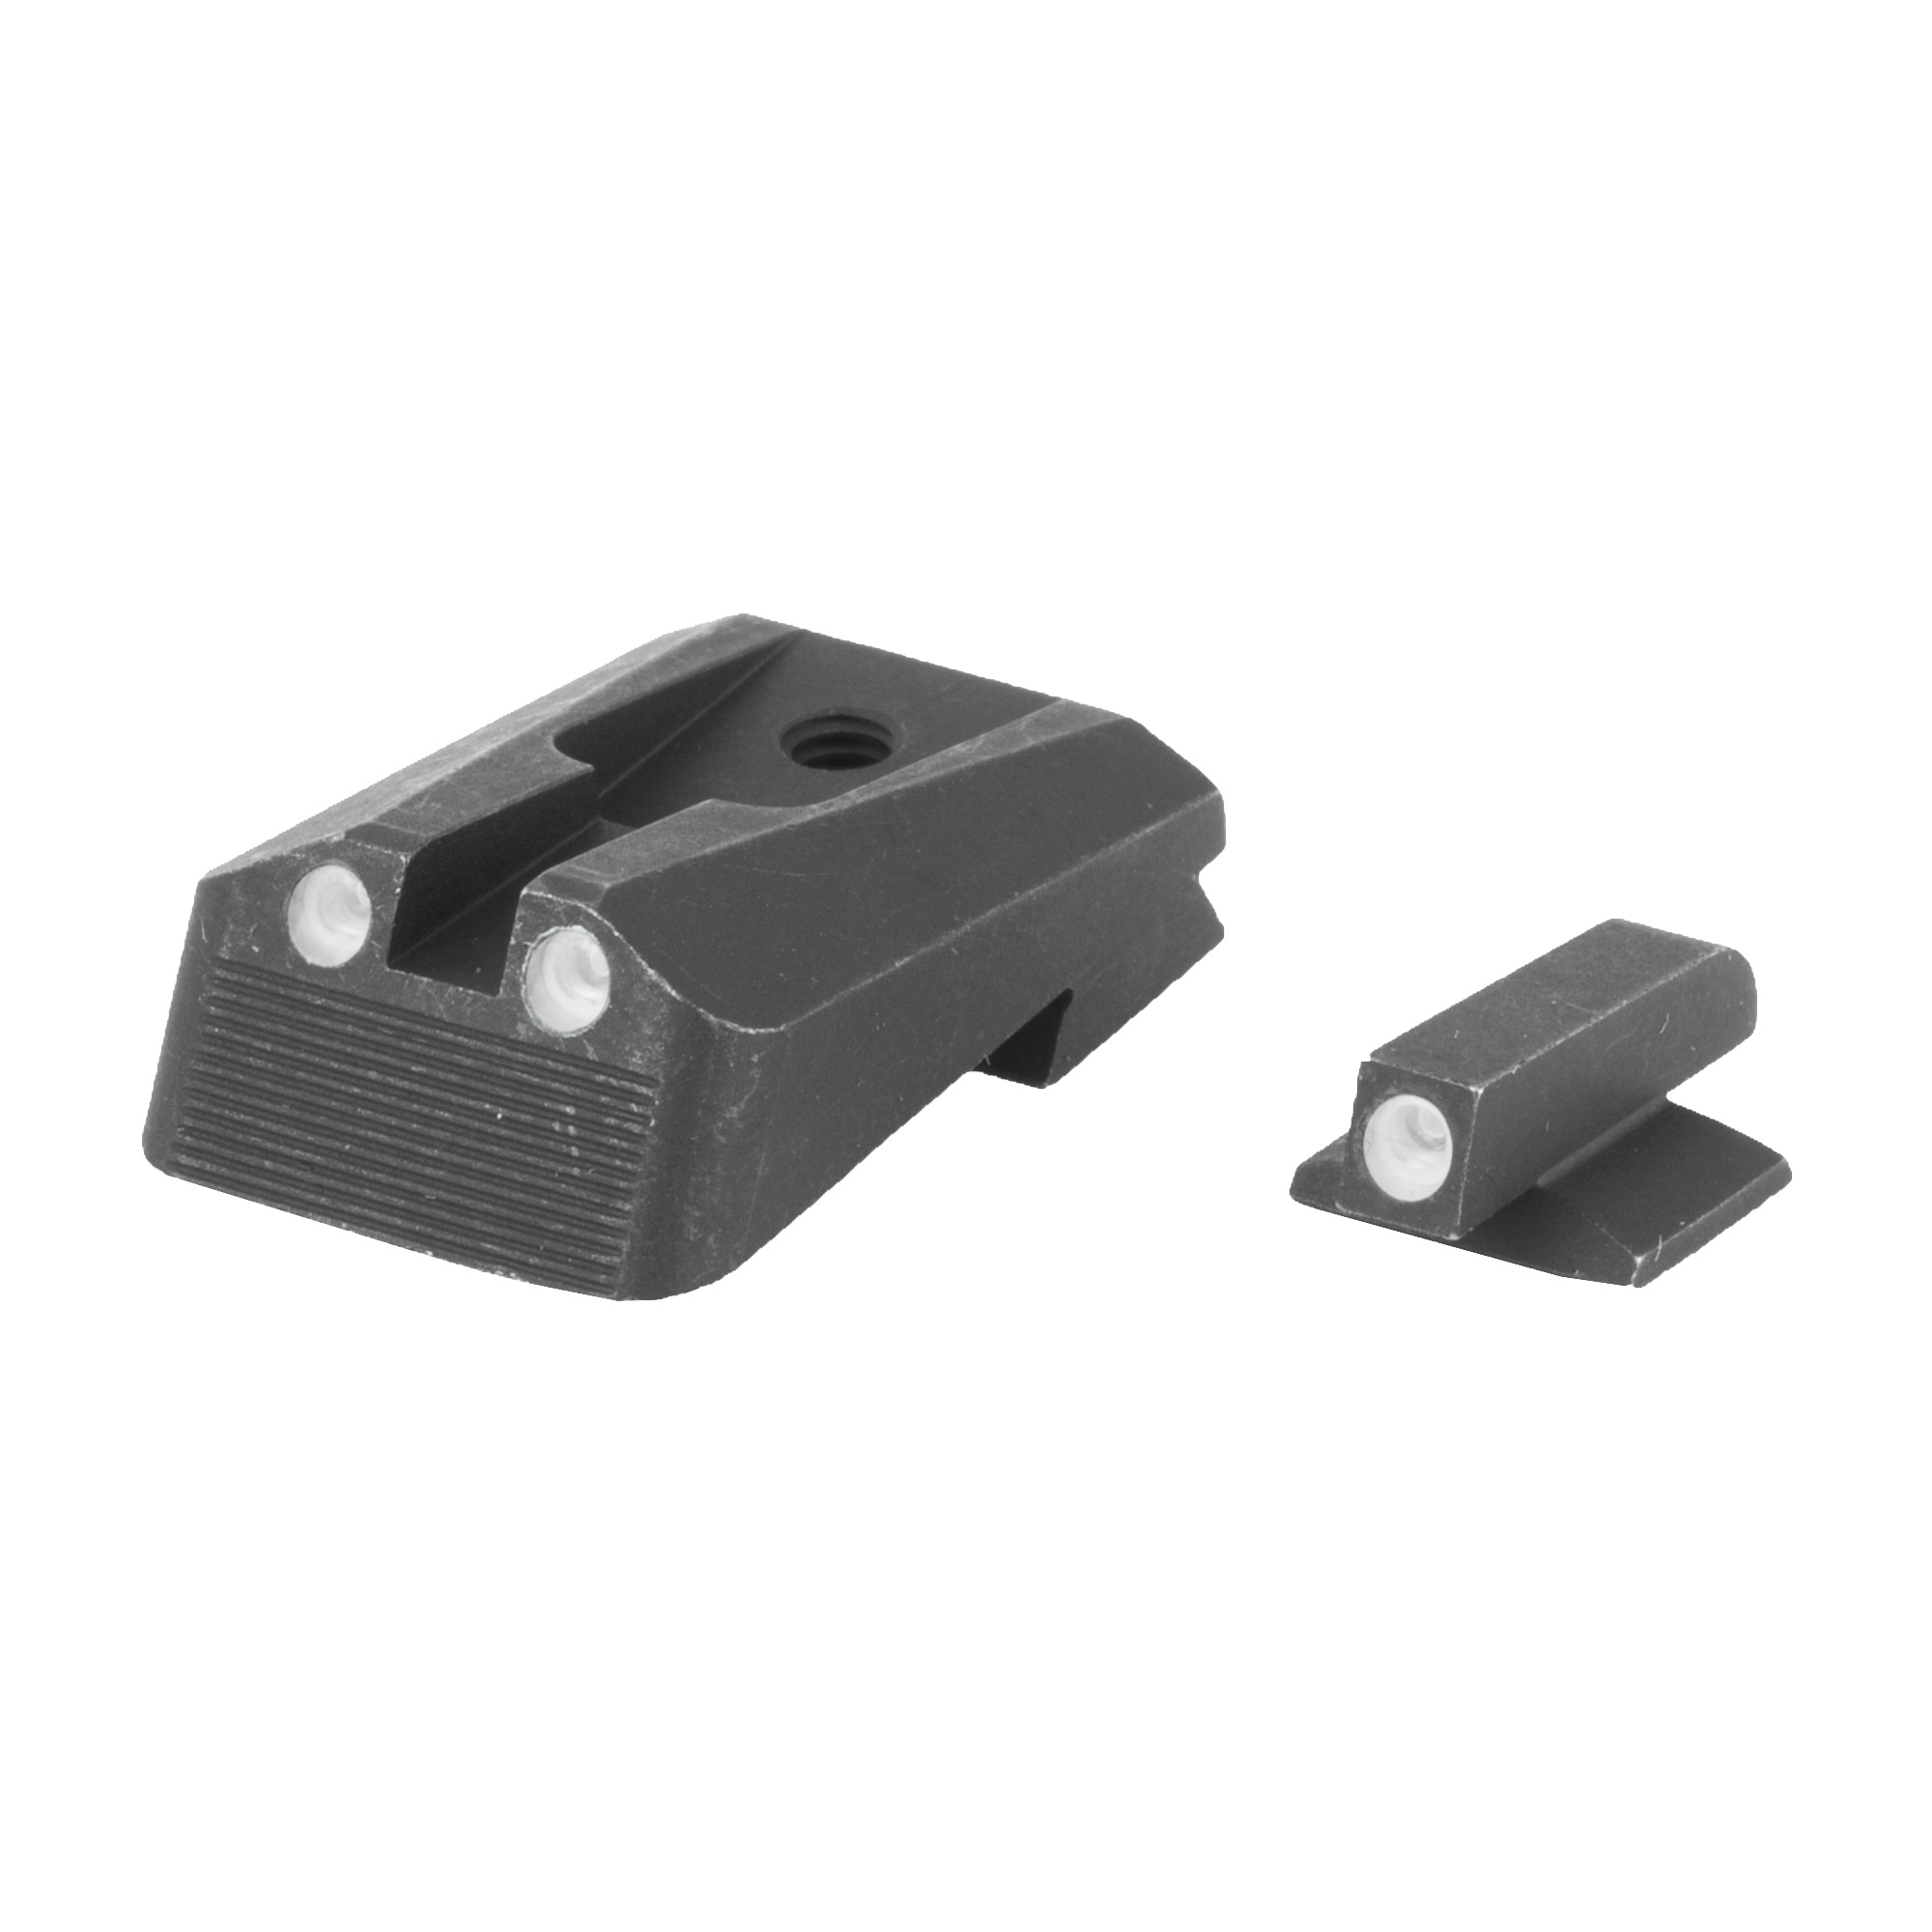 """Meprolight fixed Tactical Wedge Tru-Dot(R) tritium night sight set-Compatible with Custom"""" Pro"""" Compact and Ultra-sized models"""" this set features green tritium night sights."""